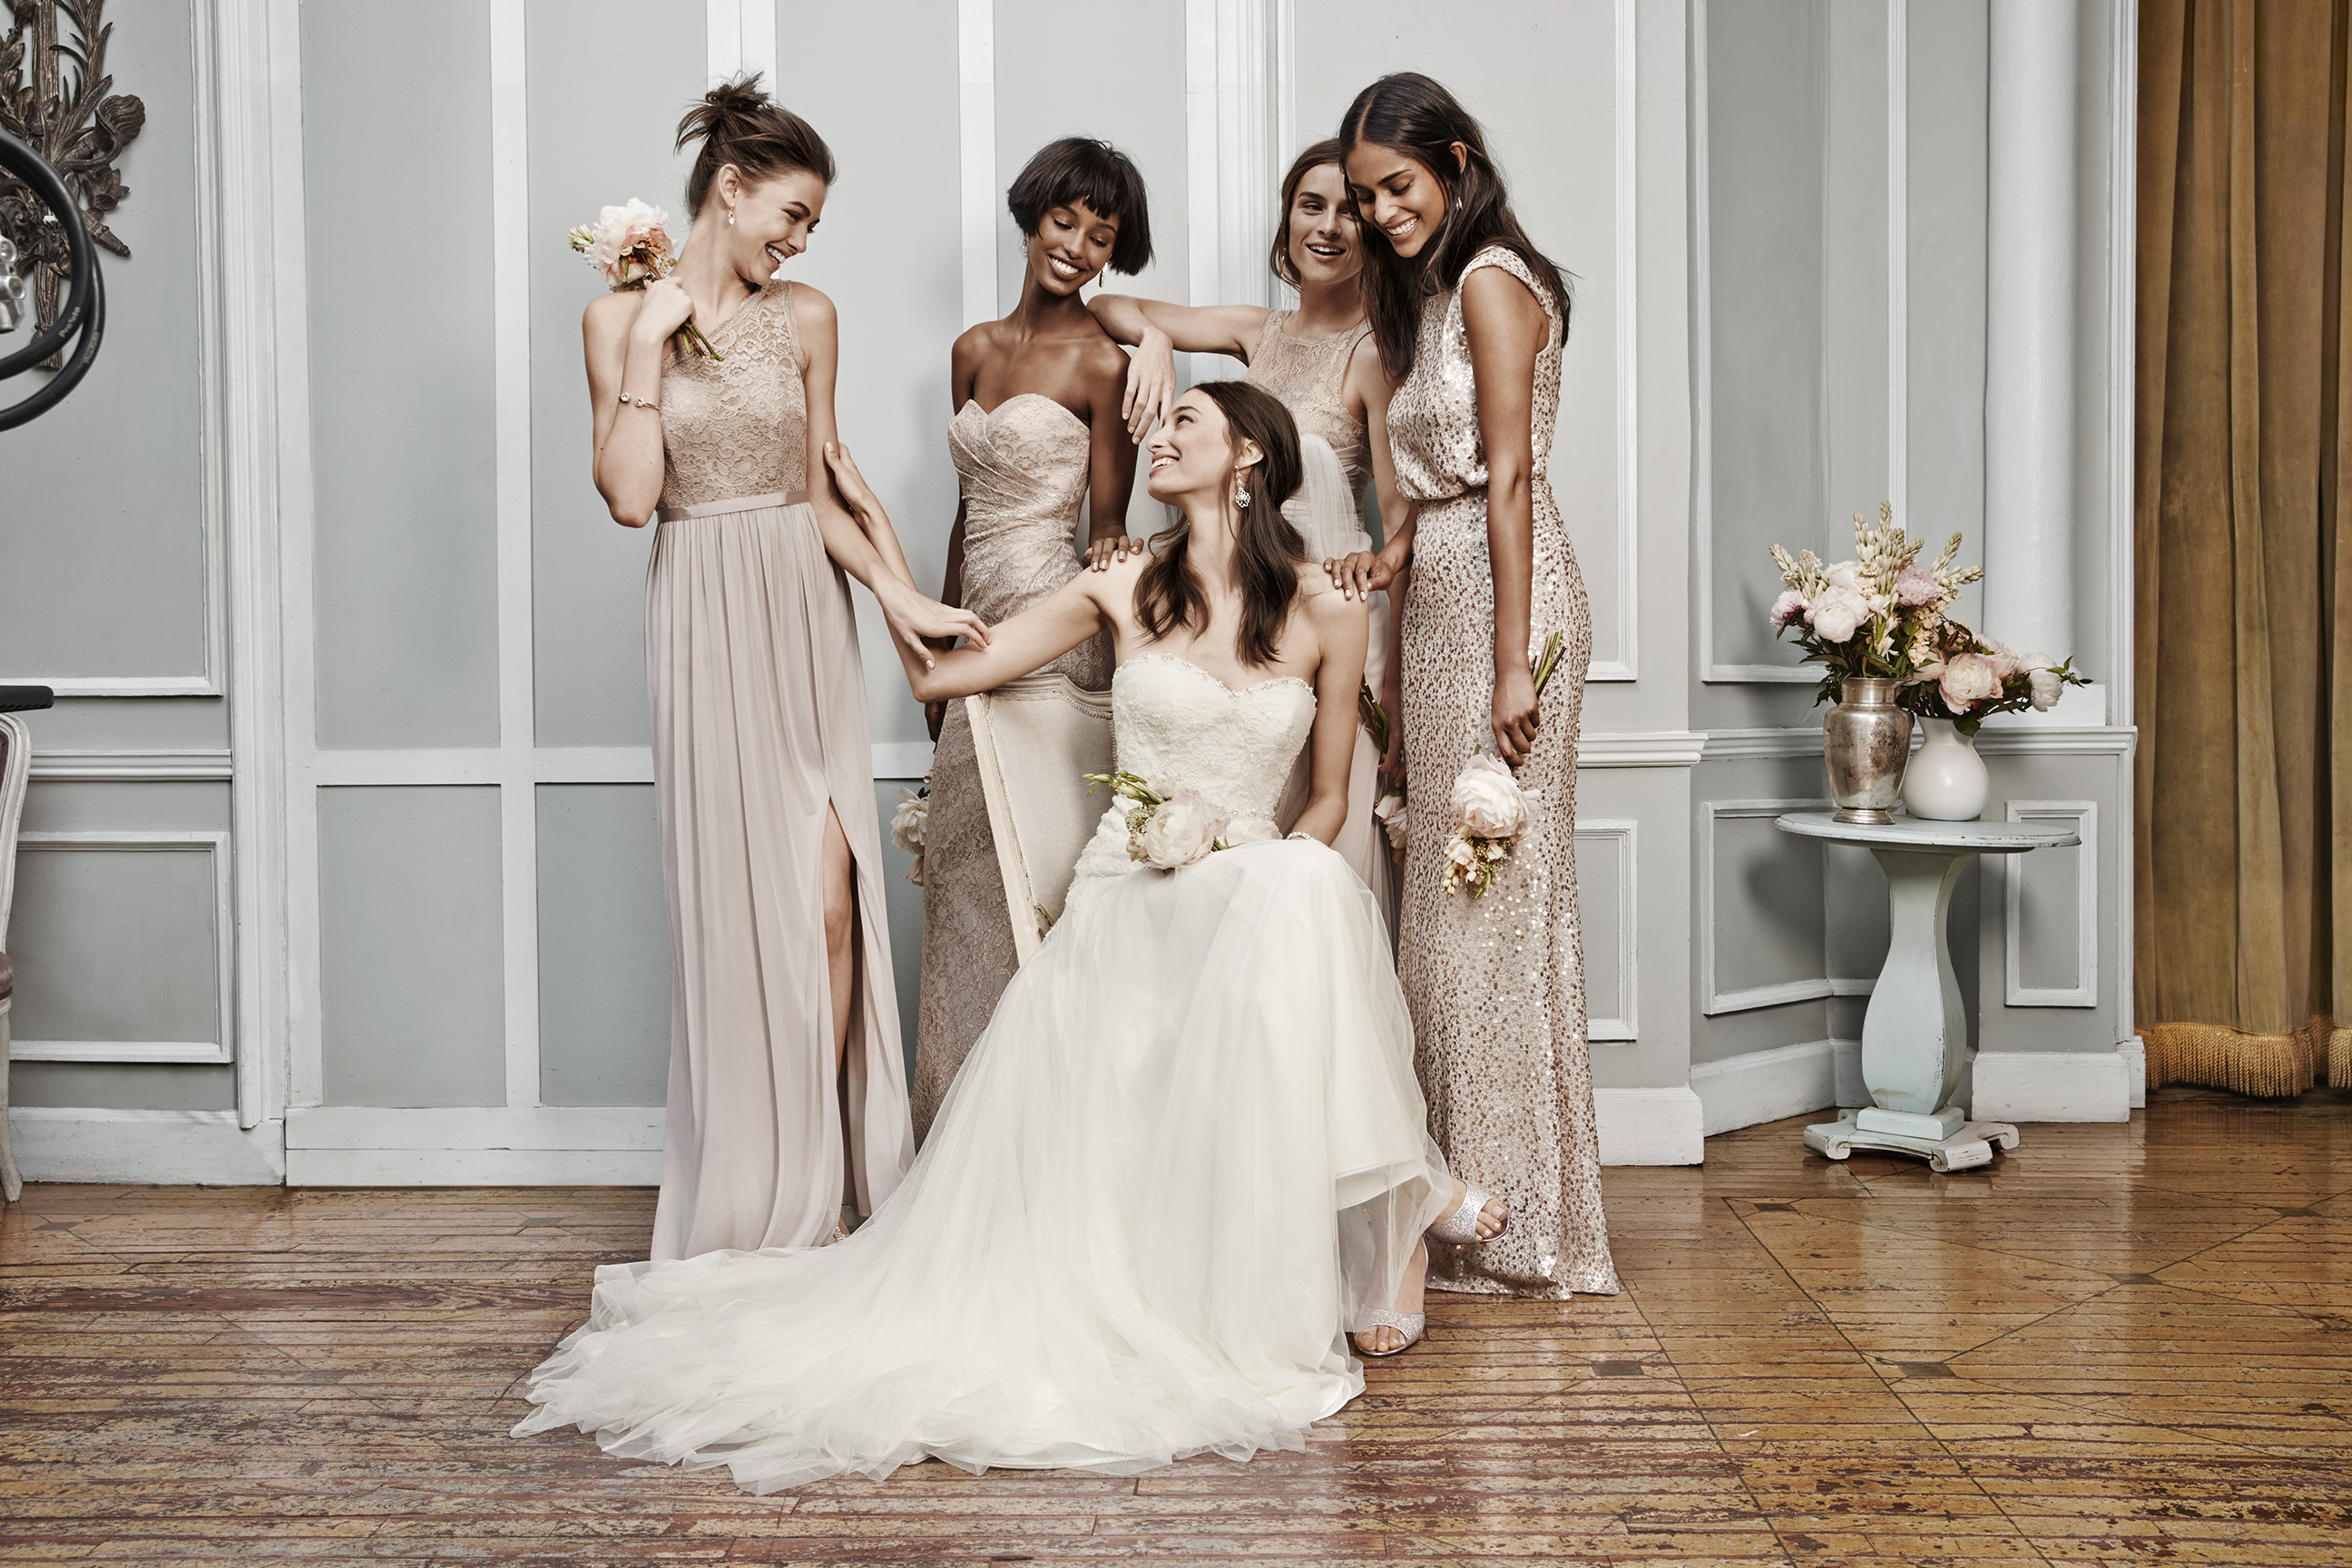 Here they are 2016s top bridesmaid dress trends 2016s top bridesmaid dress trends ombrellifo Image collections